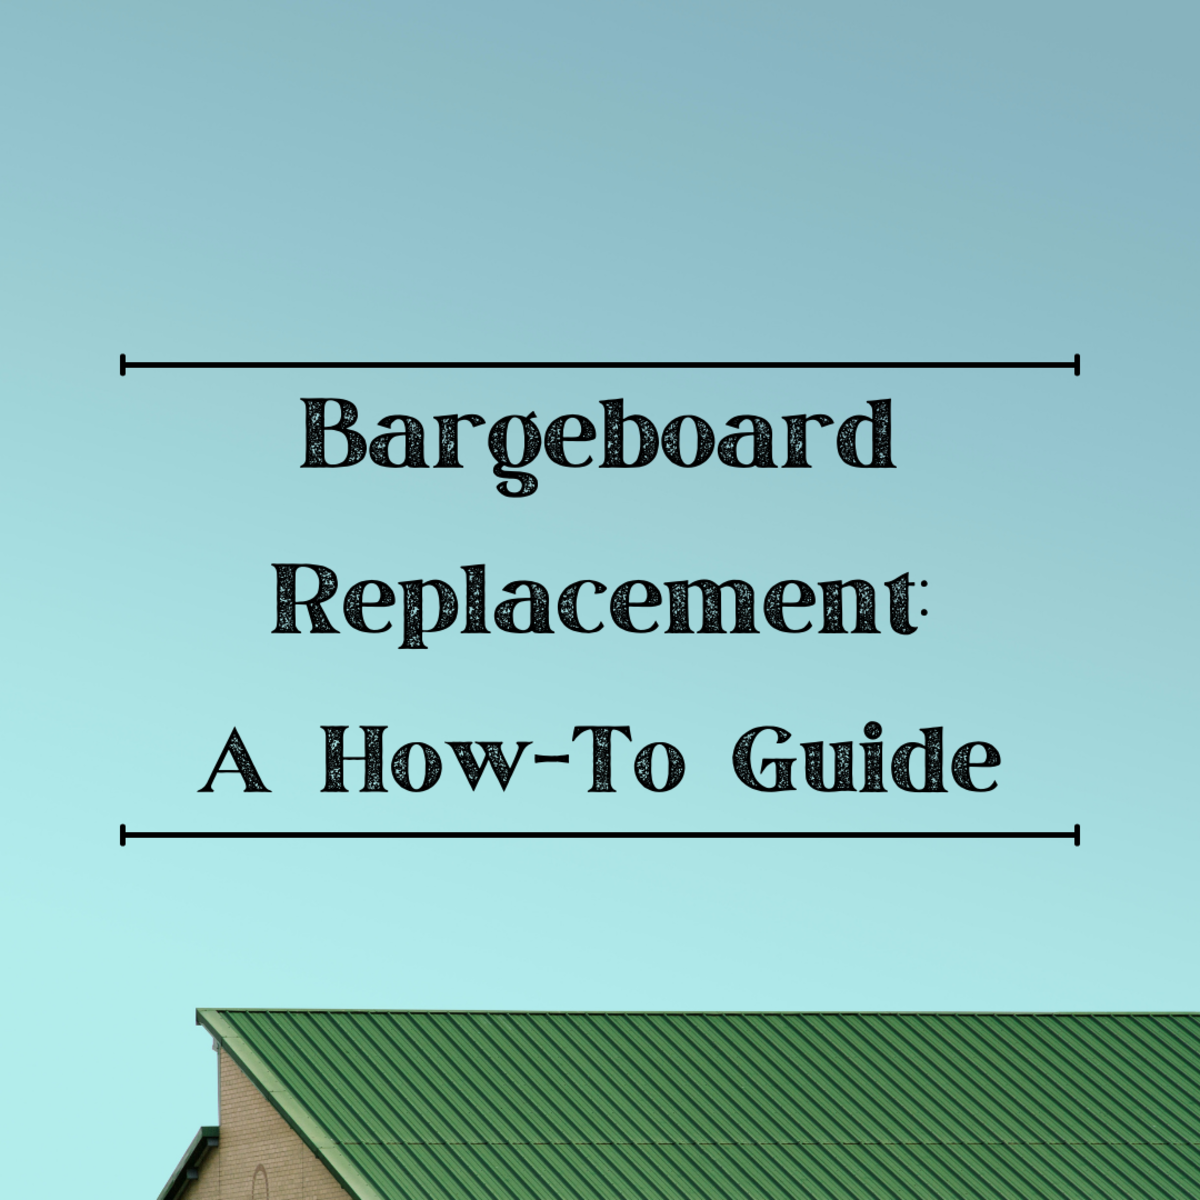 Learn the steps to replace a bargeboard